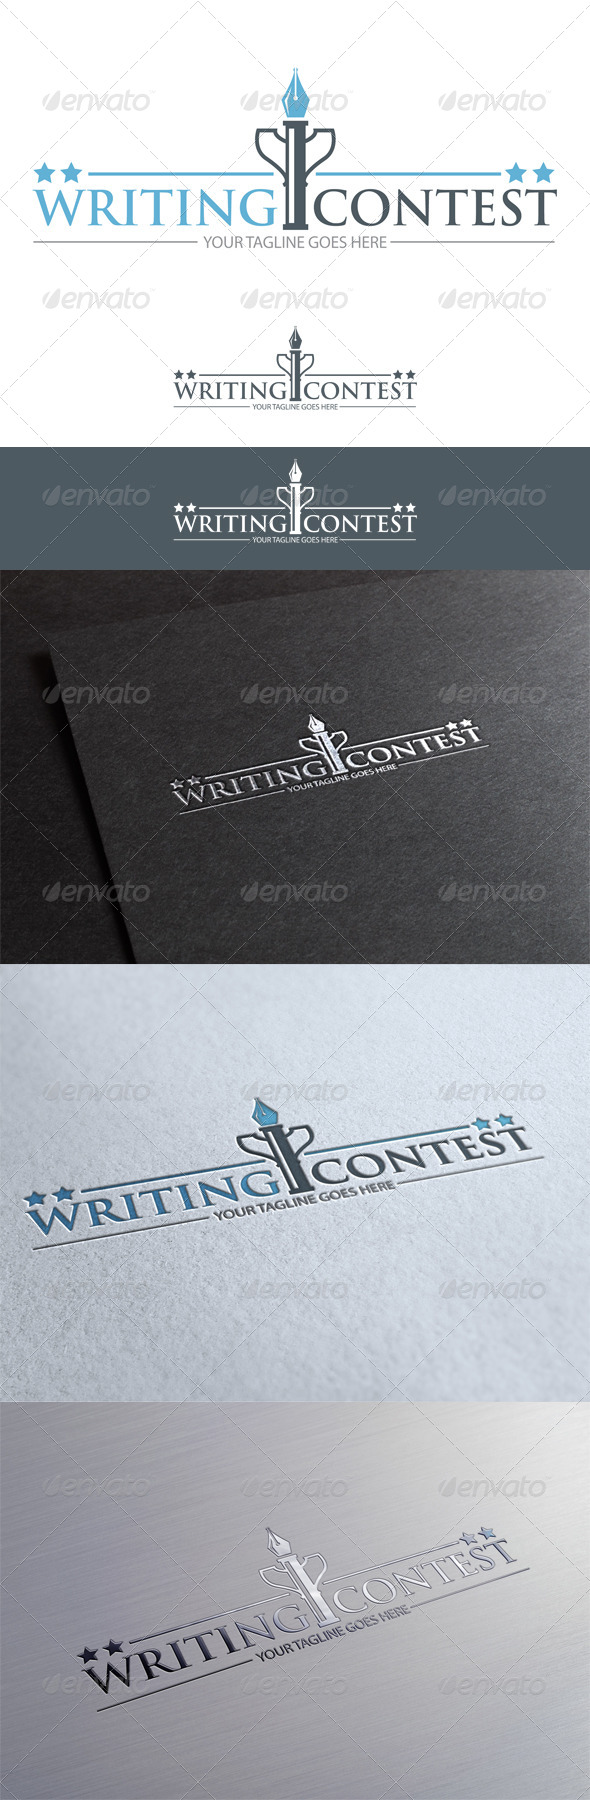 GraphicRiver Writing Contest 6676749